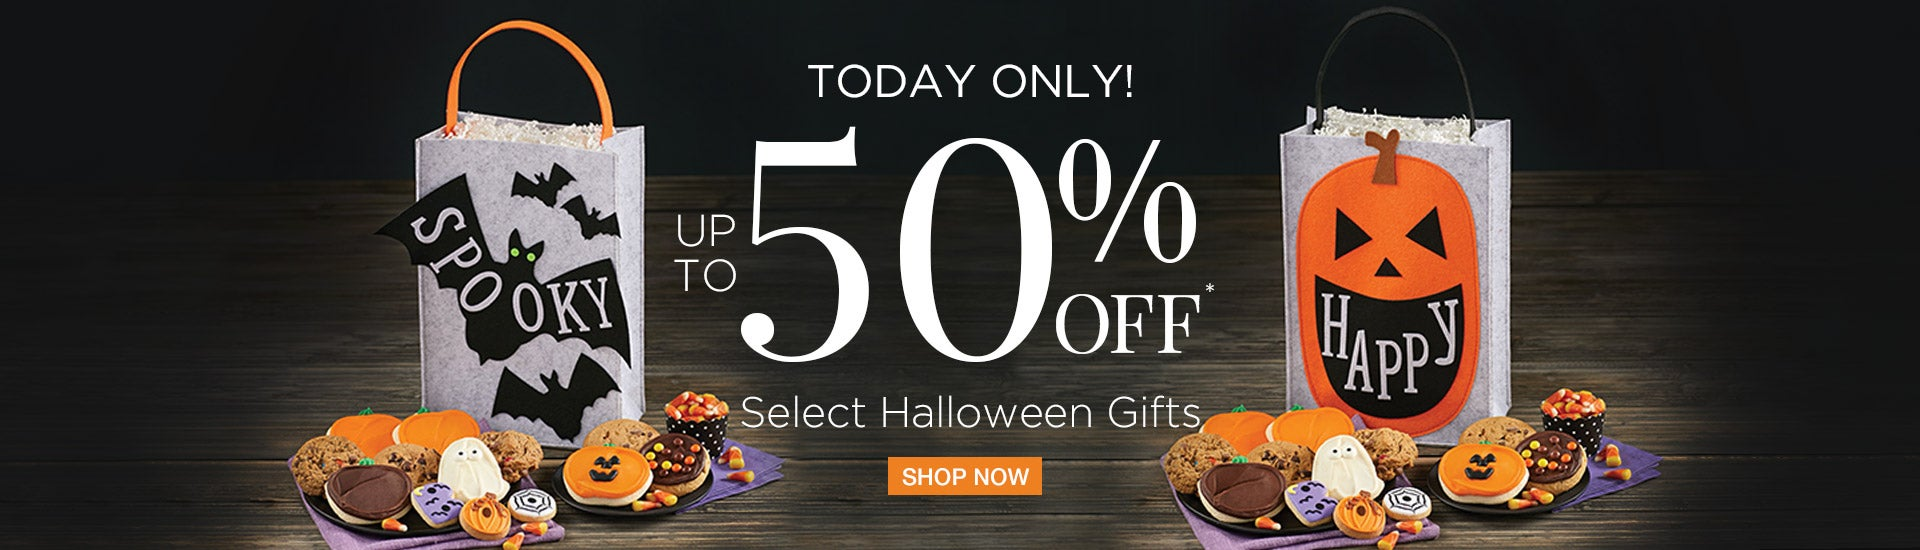 Save up to 50% on Select Halloween Gifts